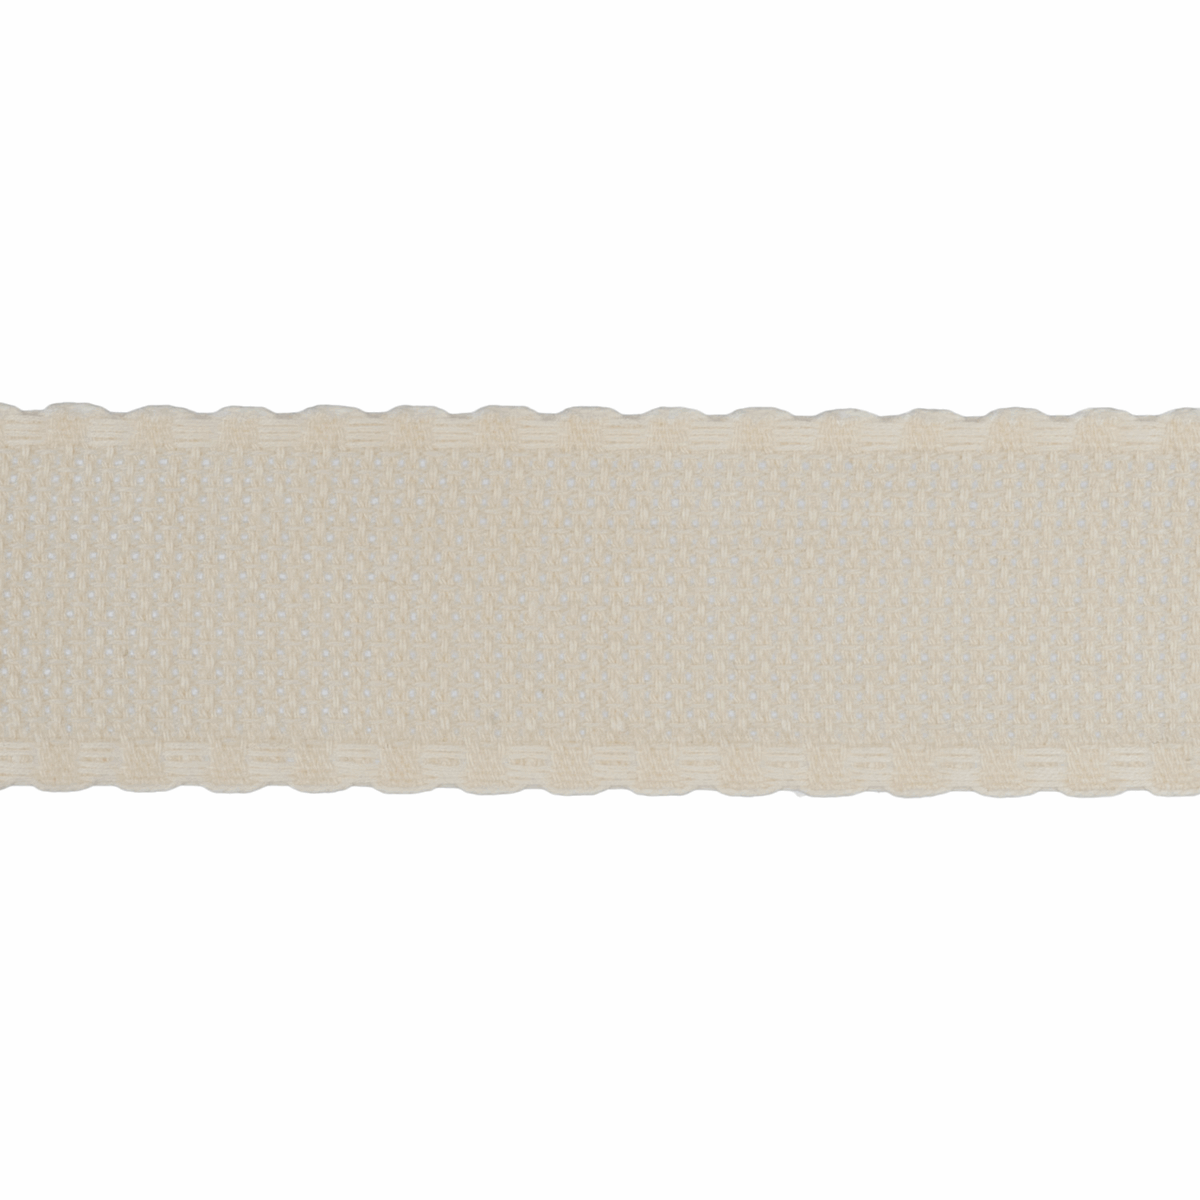 Picture of Needlecraft Fabric: Aida Band: 16 Count: 8m x 30mm: Cream